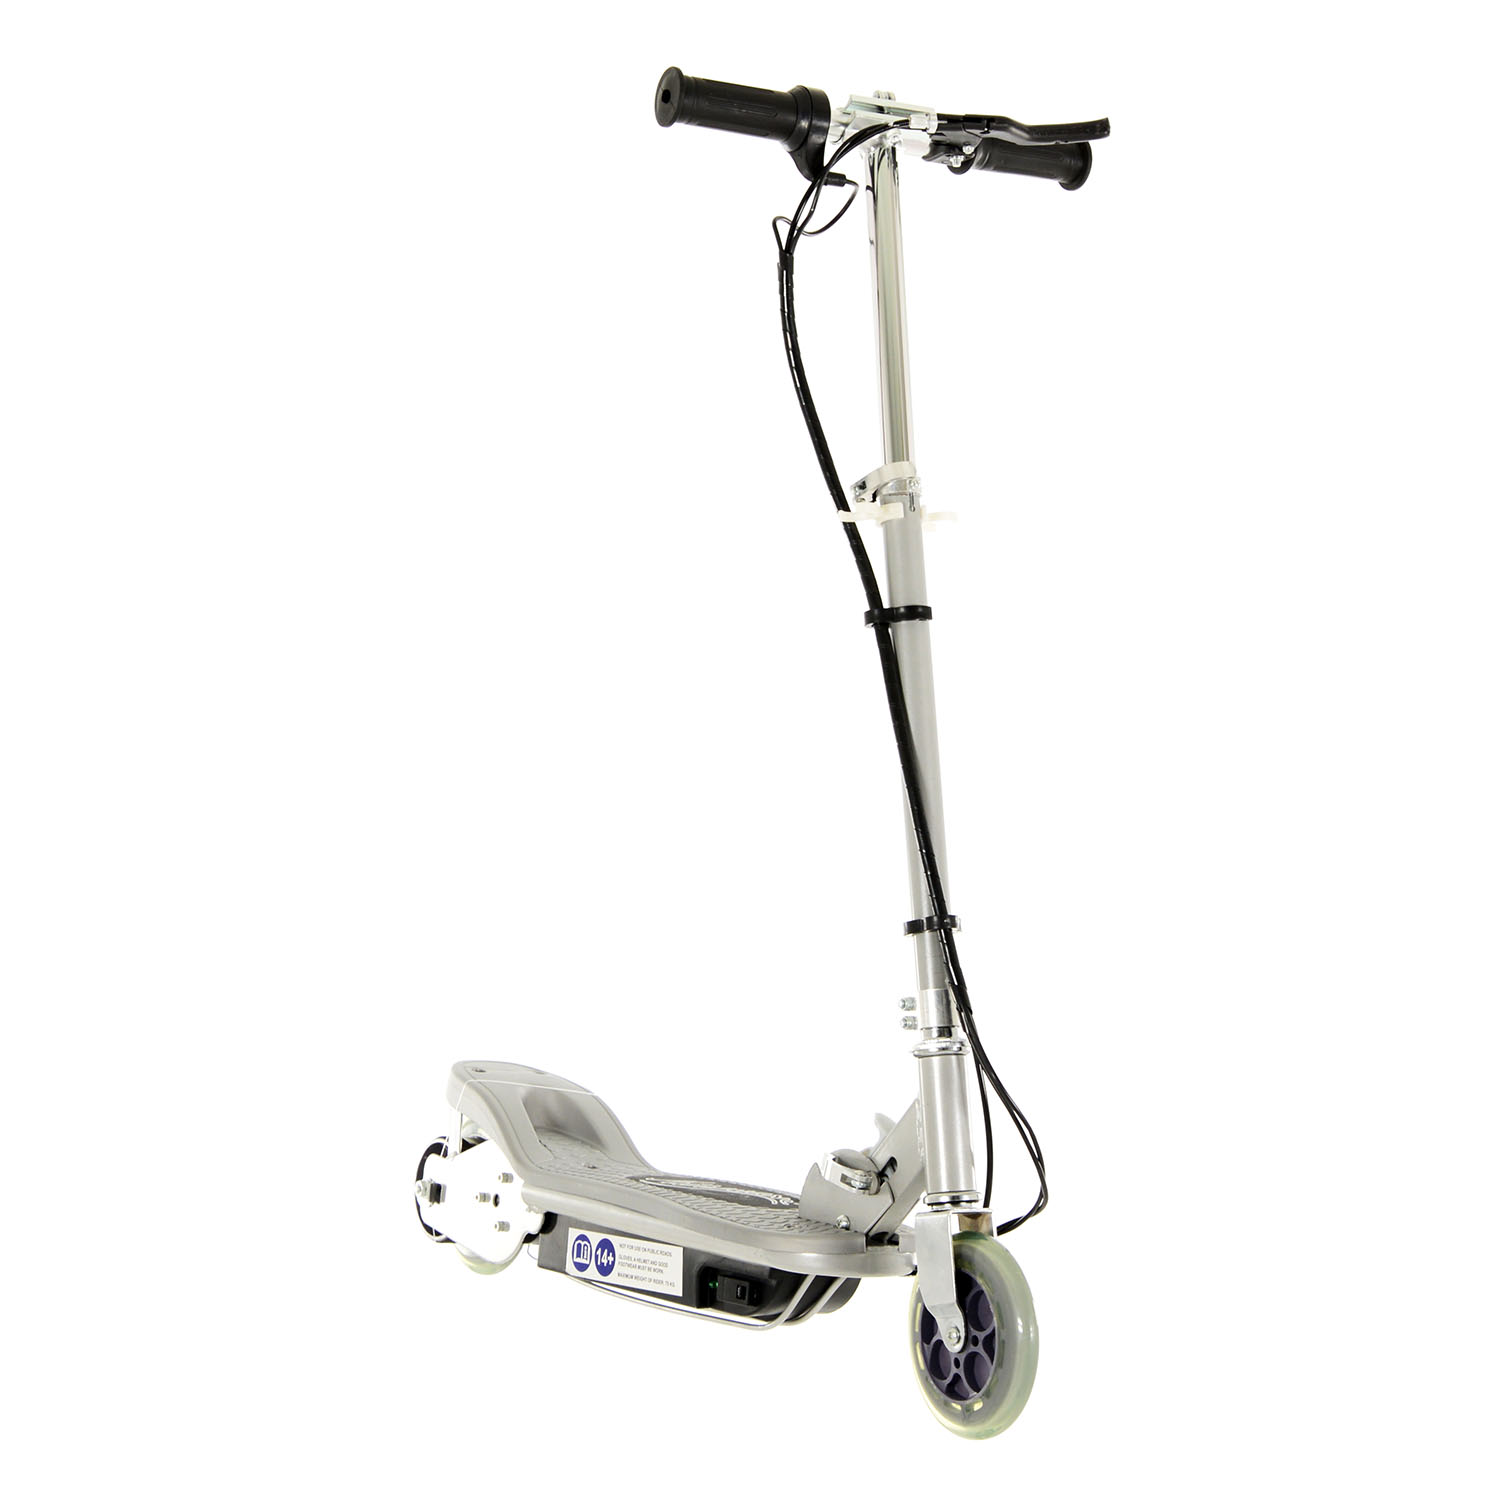 Airwave Electric Kids Scooter Electric Ride On Scooter